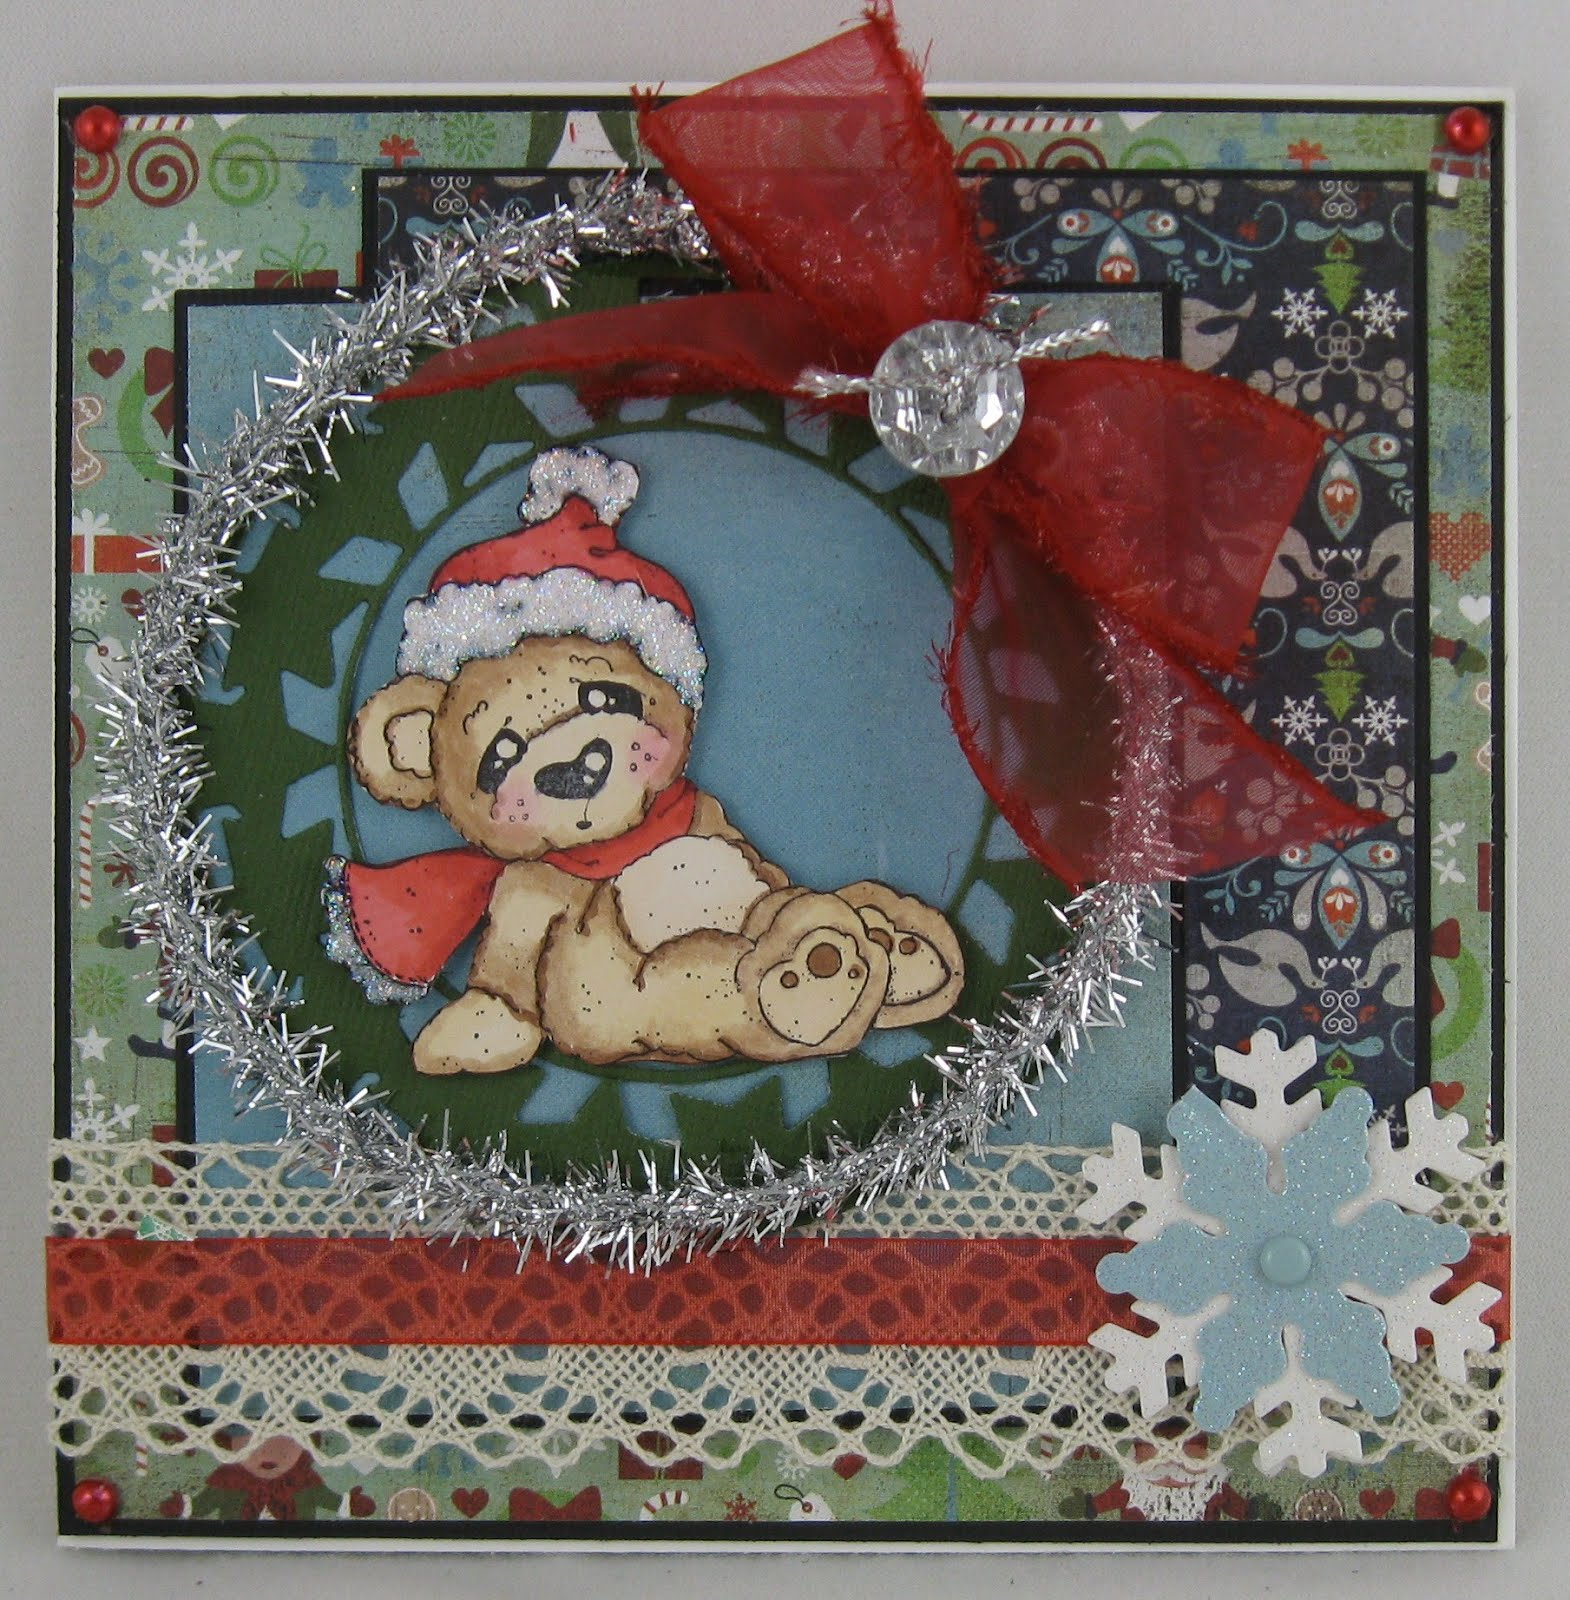 Christina39;s Card Connection: Cozy Christmas Bear